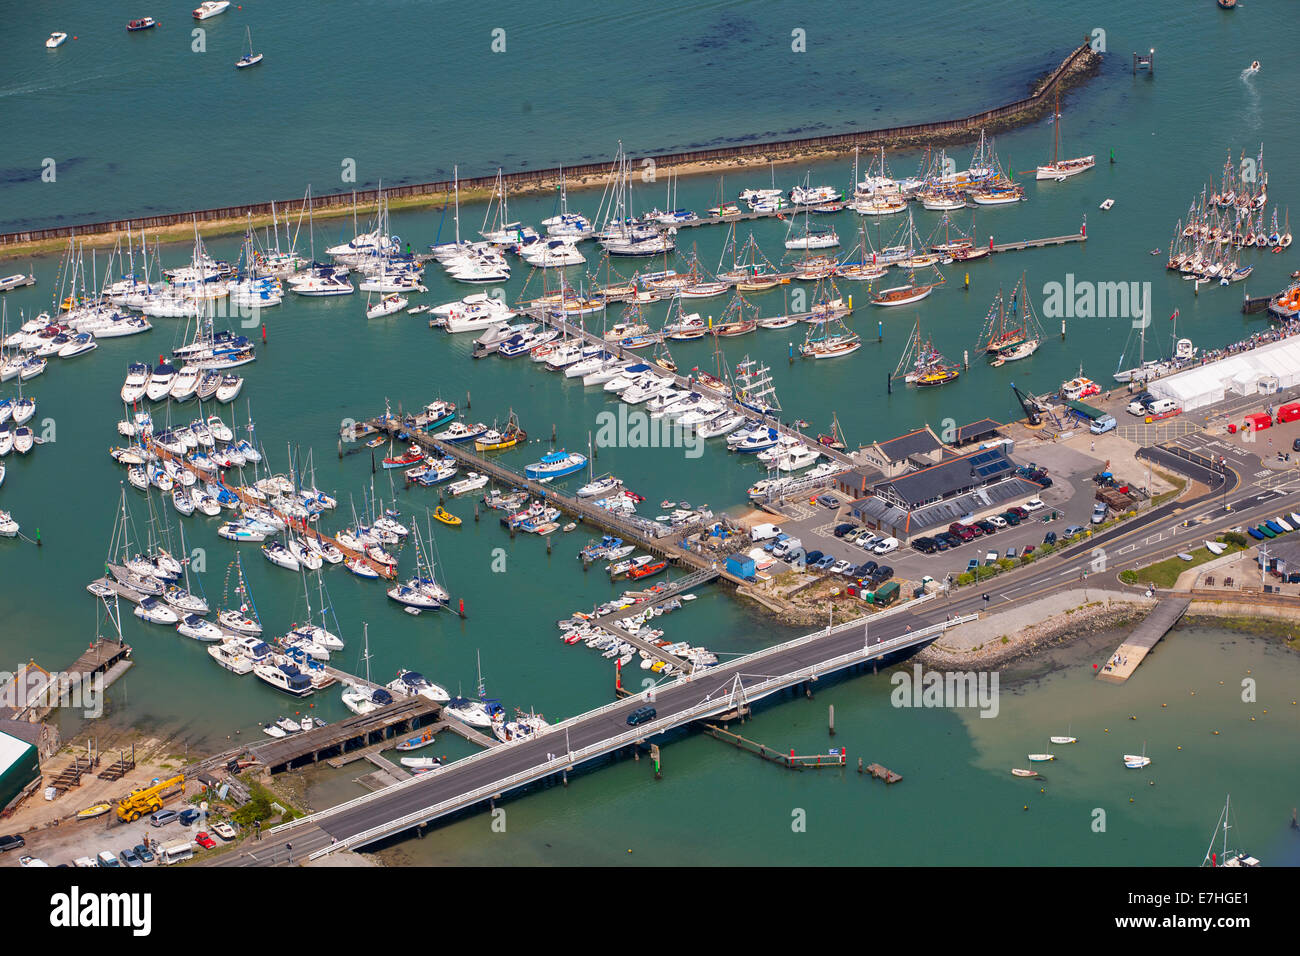 Yachts, Marina, Old Gaffers Festival, Yarmouth, Harbour, Aerial, UK, England, Isle of Wight, Stock Photo